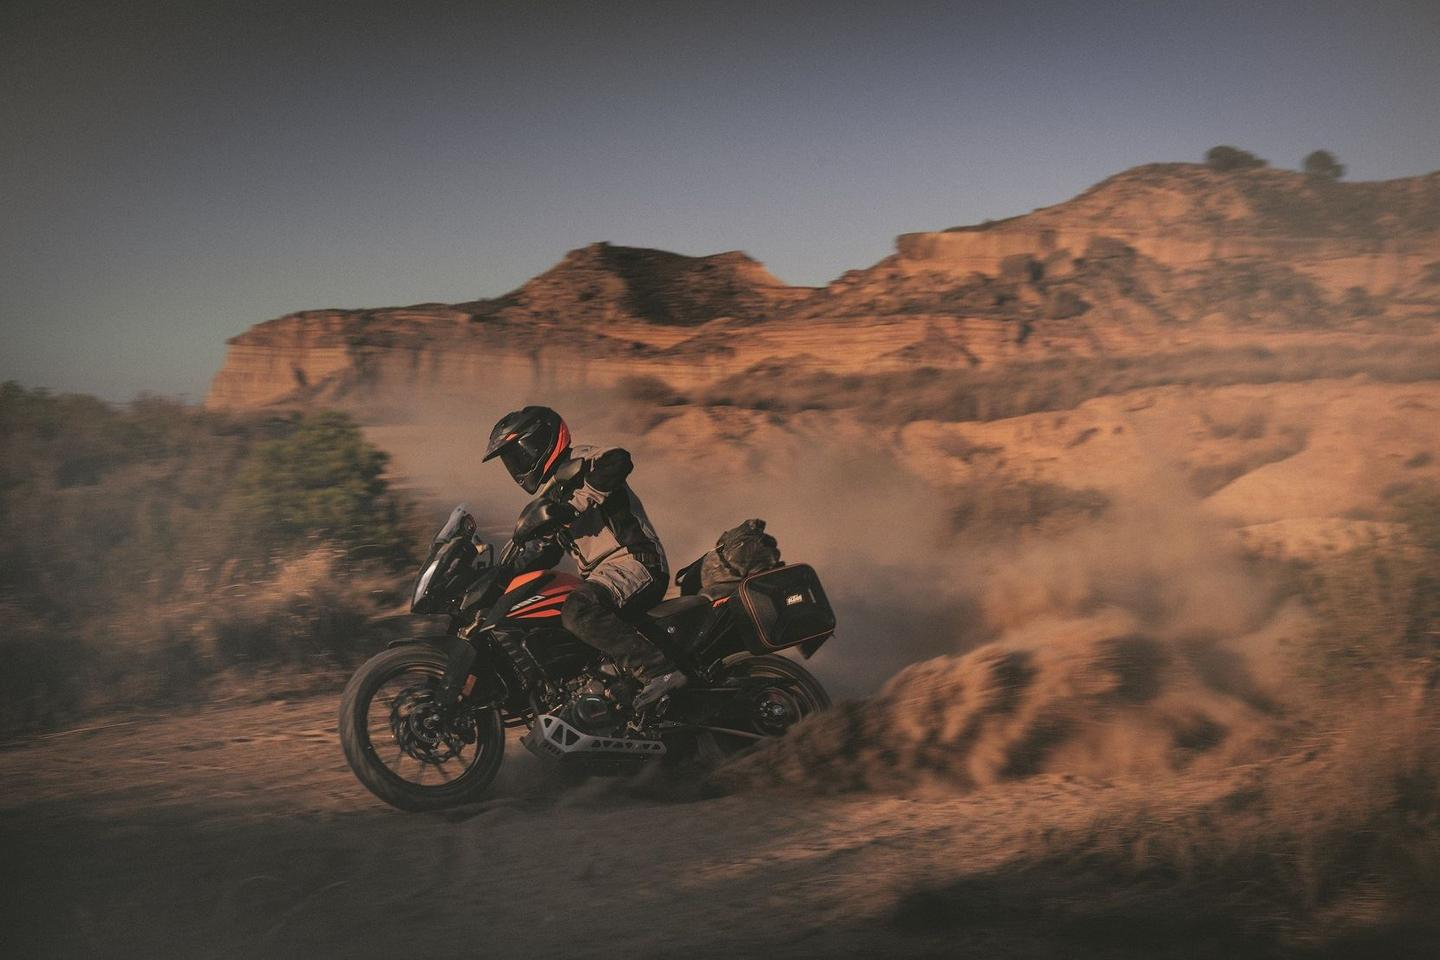 The 2020 KTM 390 Adventure is a highly approachable on/off road tourer